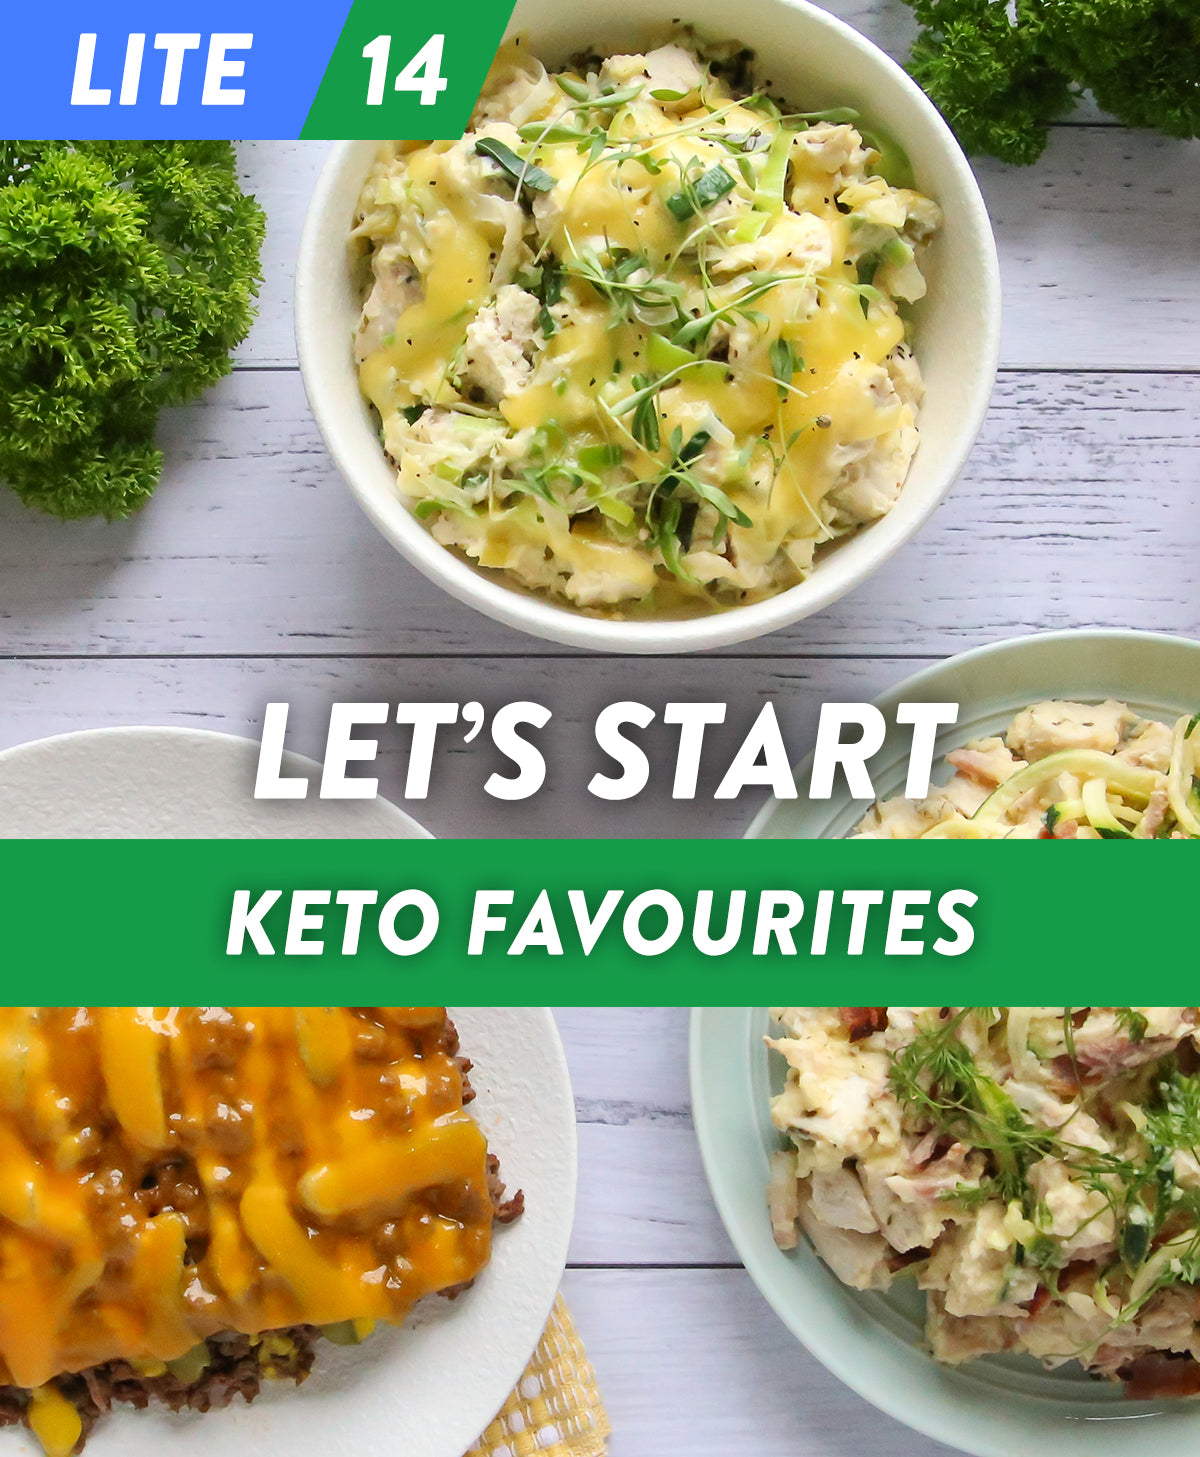 Let's Start - Keto Favourites LITE 14